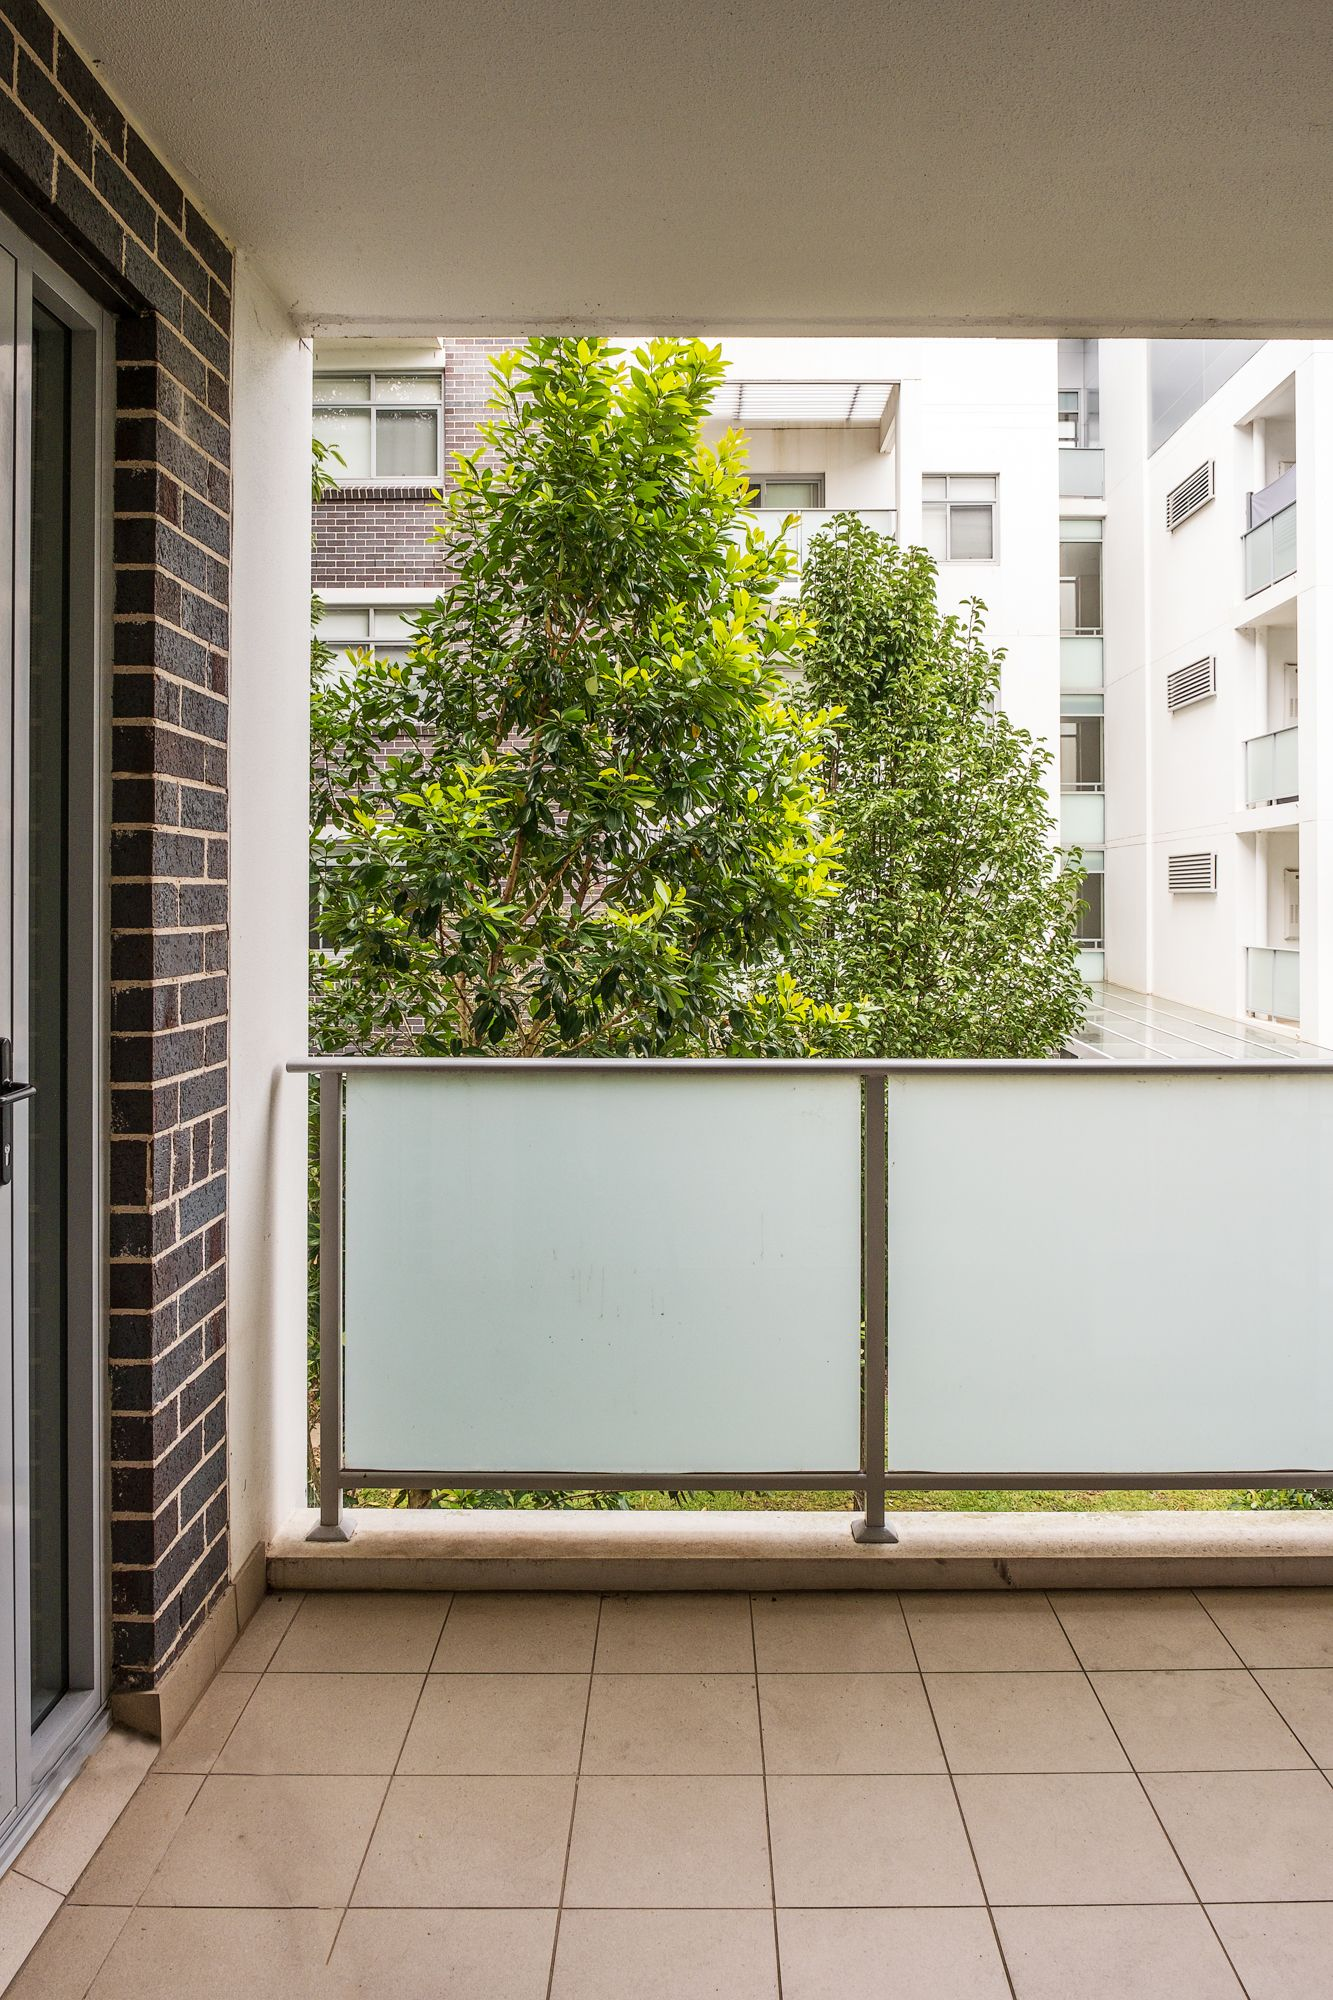 61/212 Mona Vale Road St Ives 2075